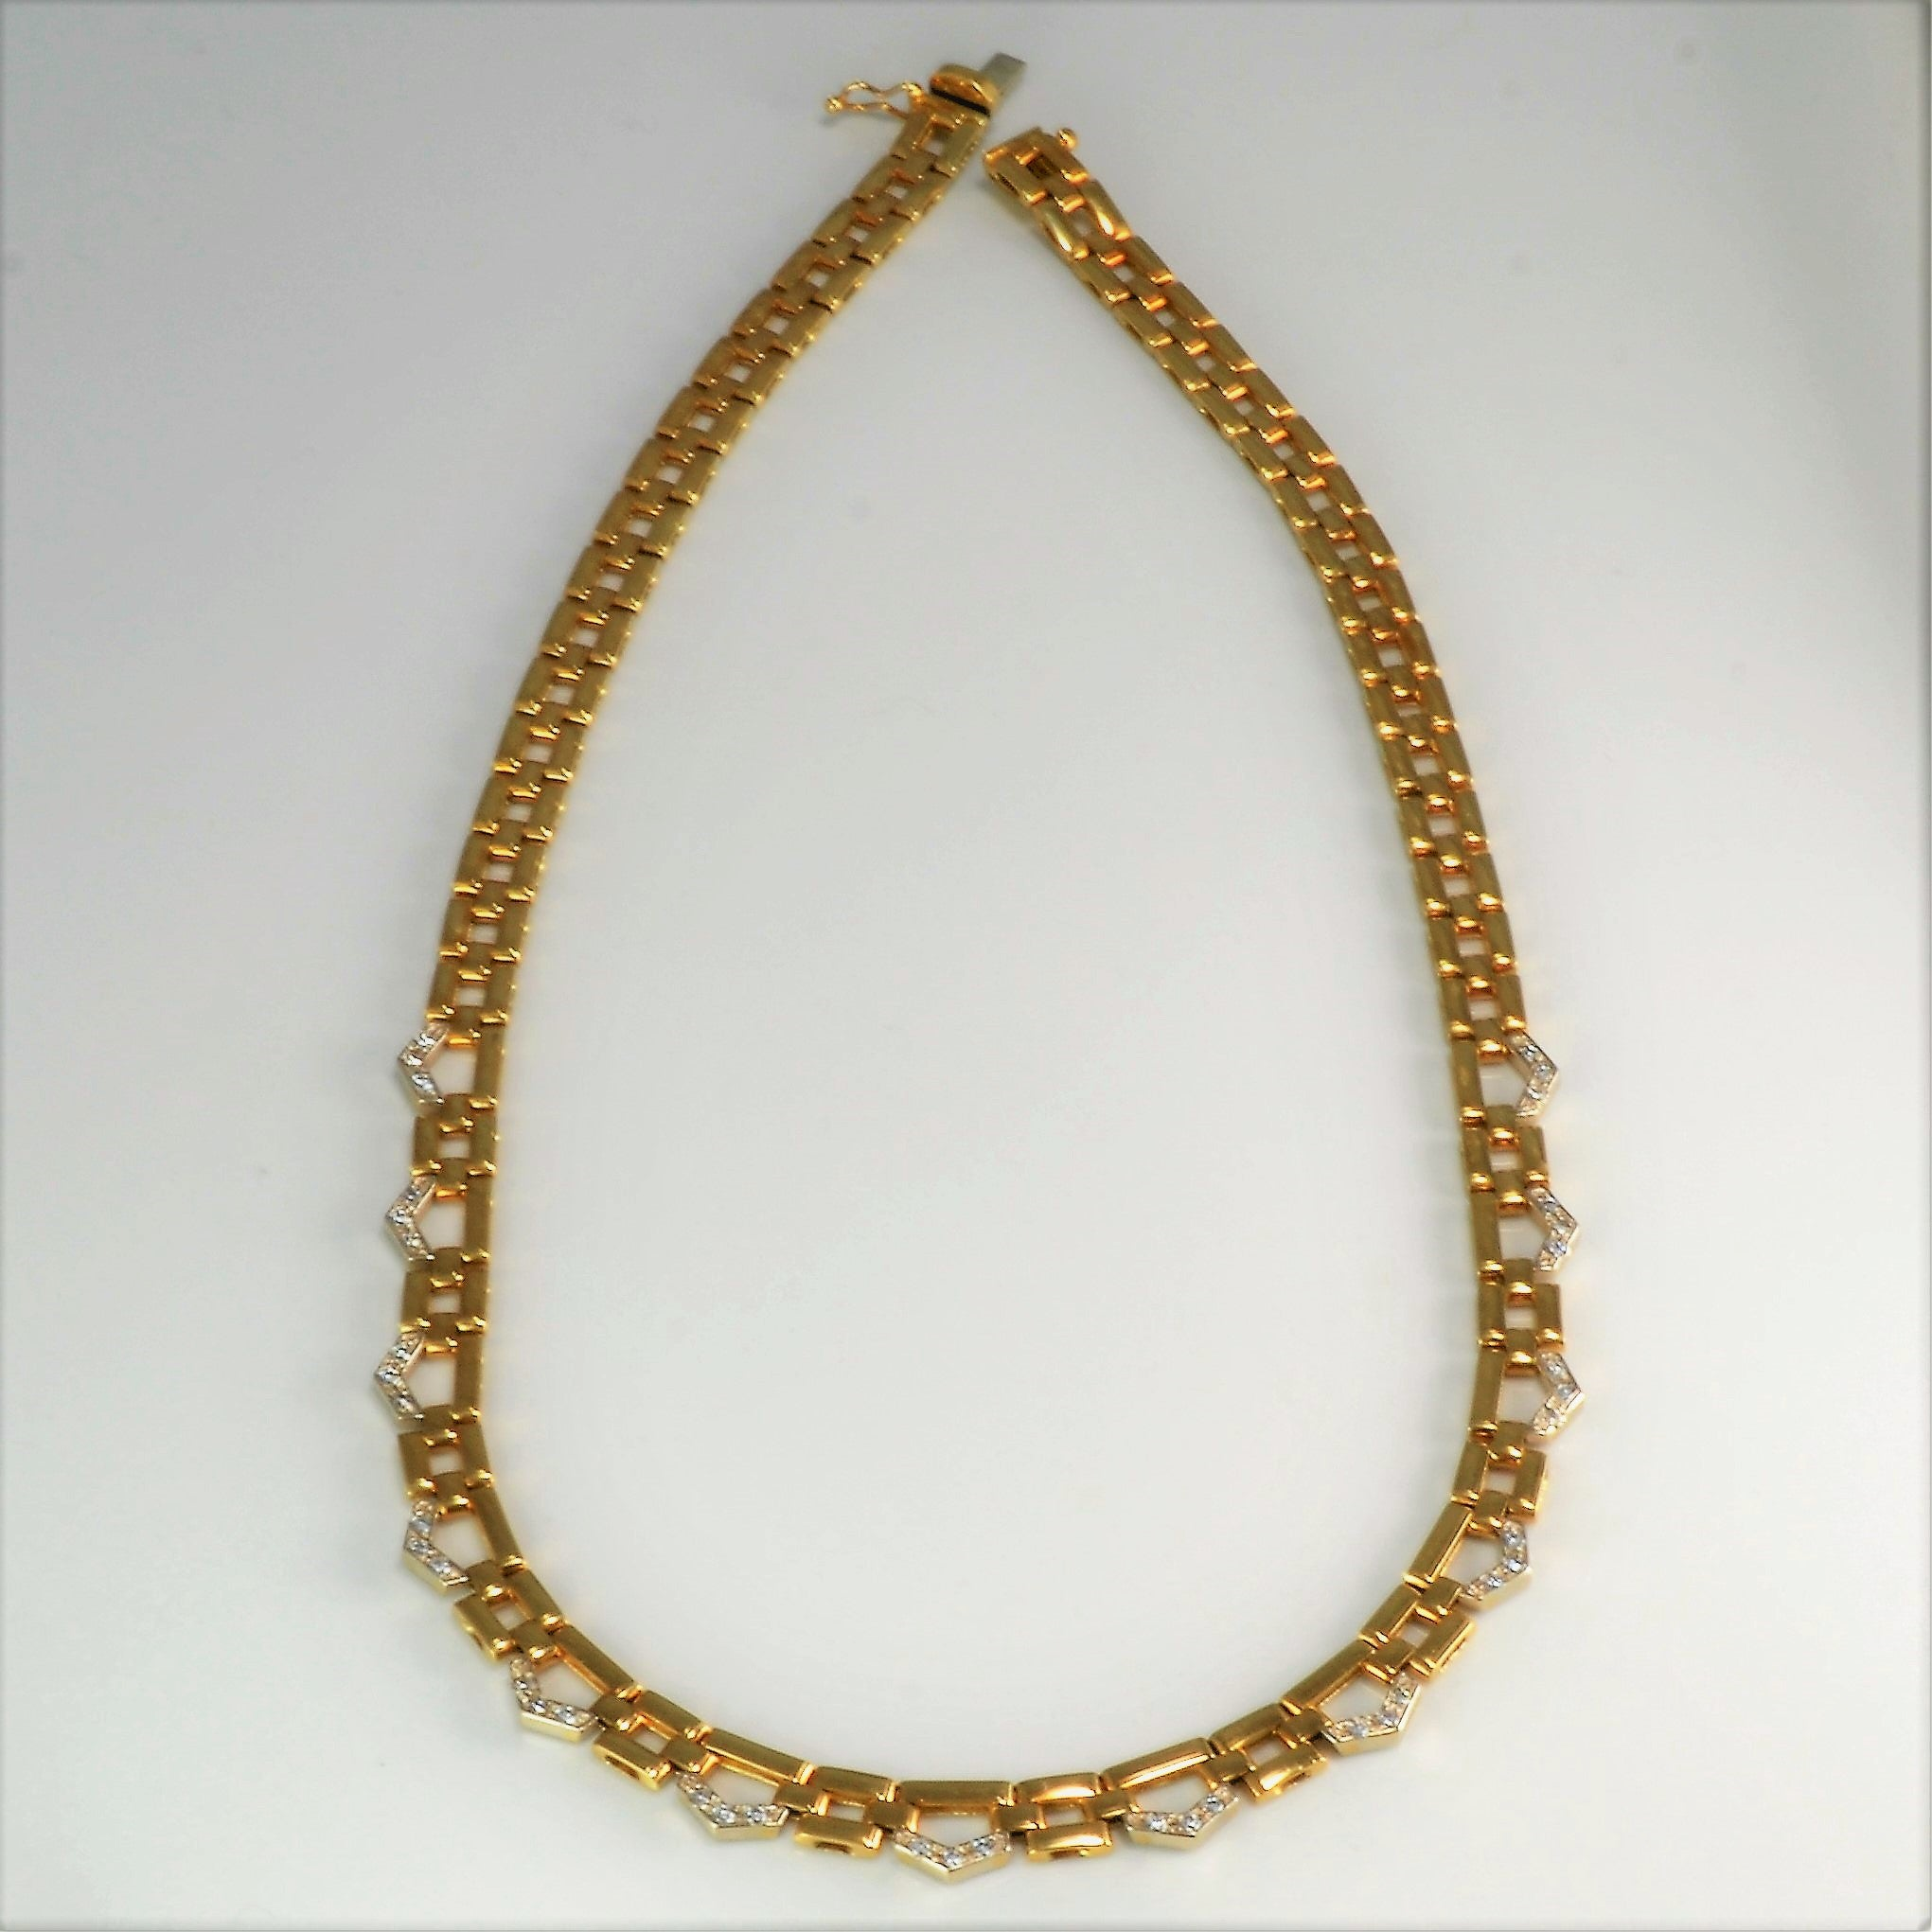 two bfeb fancy dsc products gold ways diamond tone natural necklace